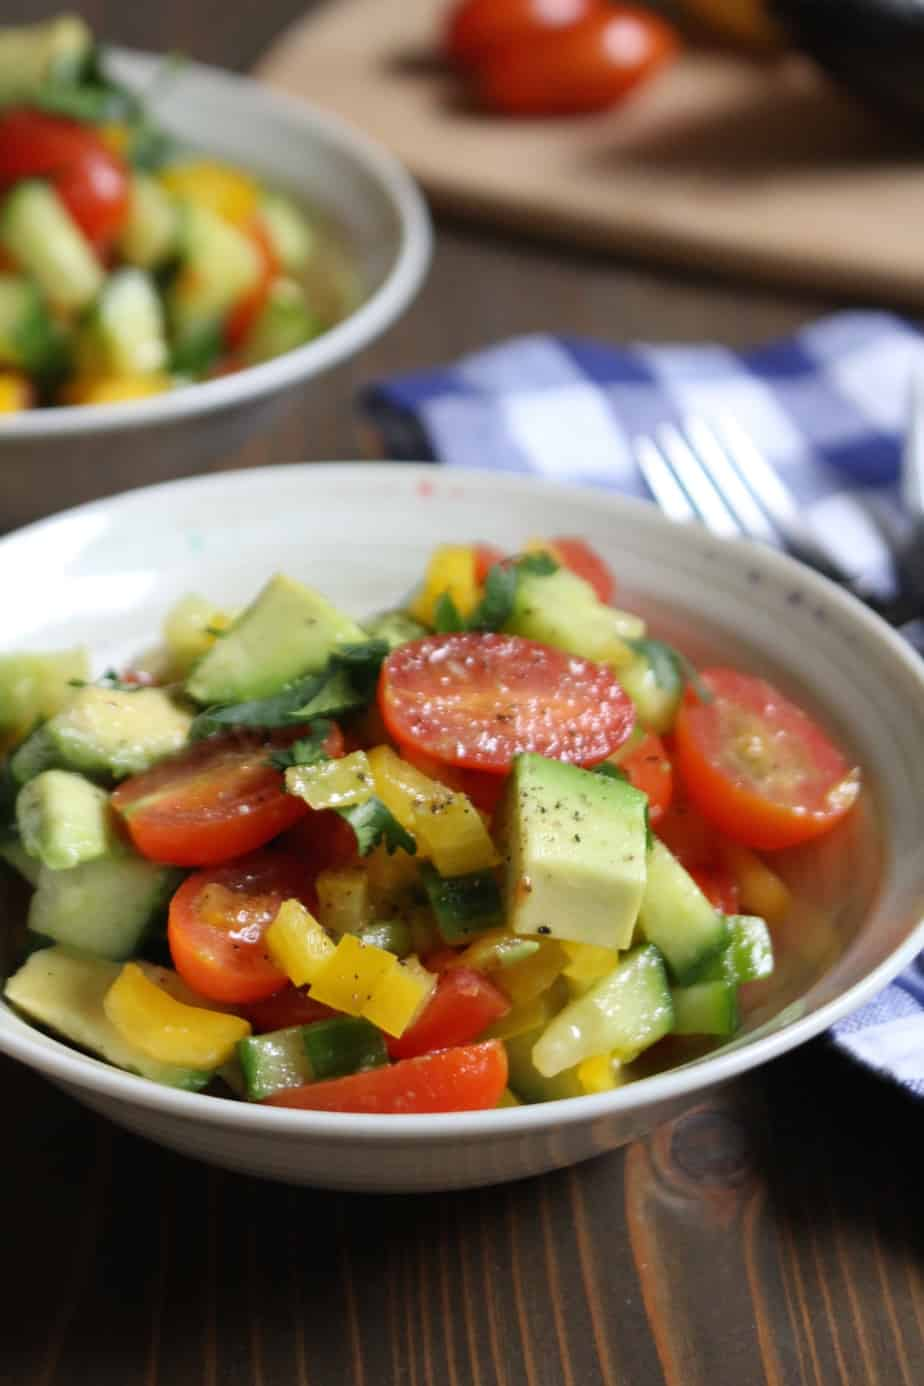 Jayme's Summer Vegetable Salad with Avocado | Frugal Nutrition #whole30